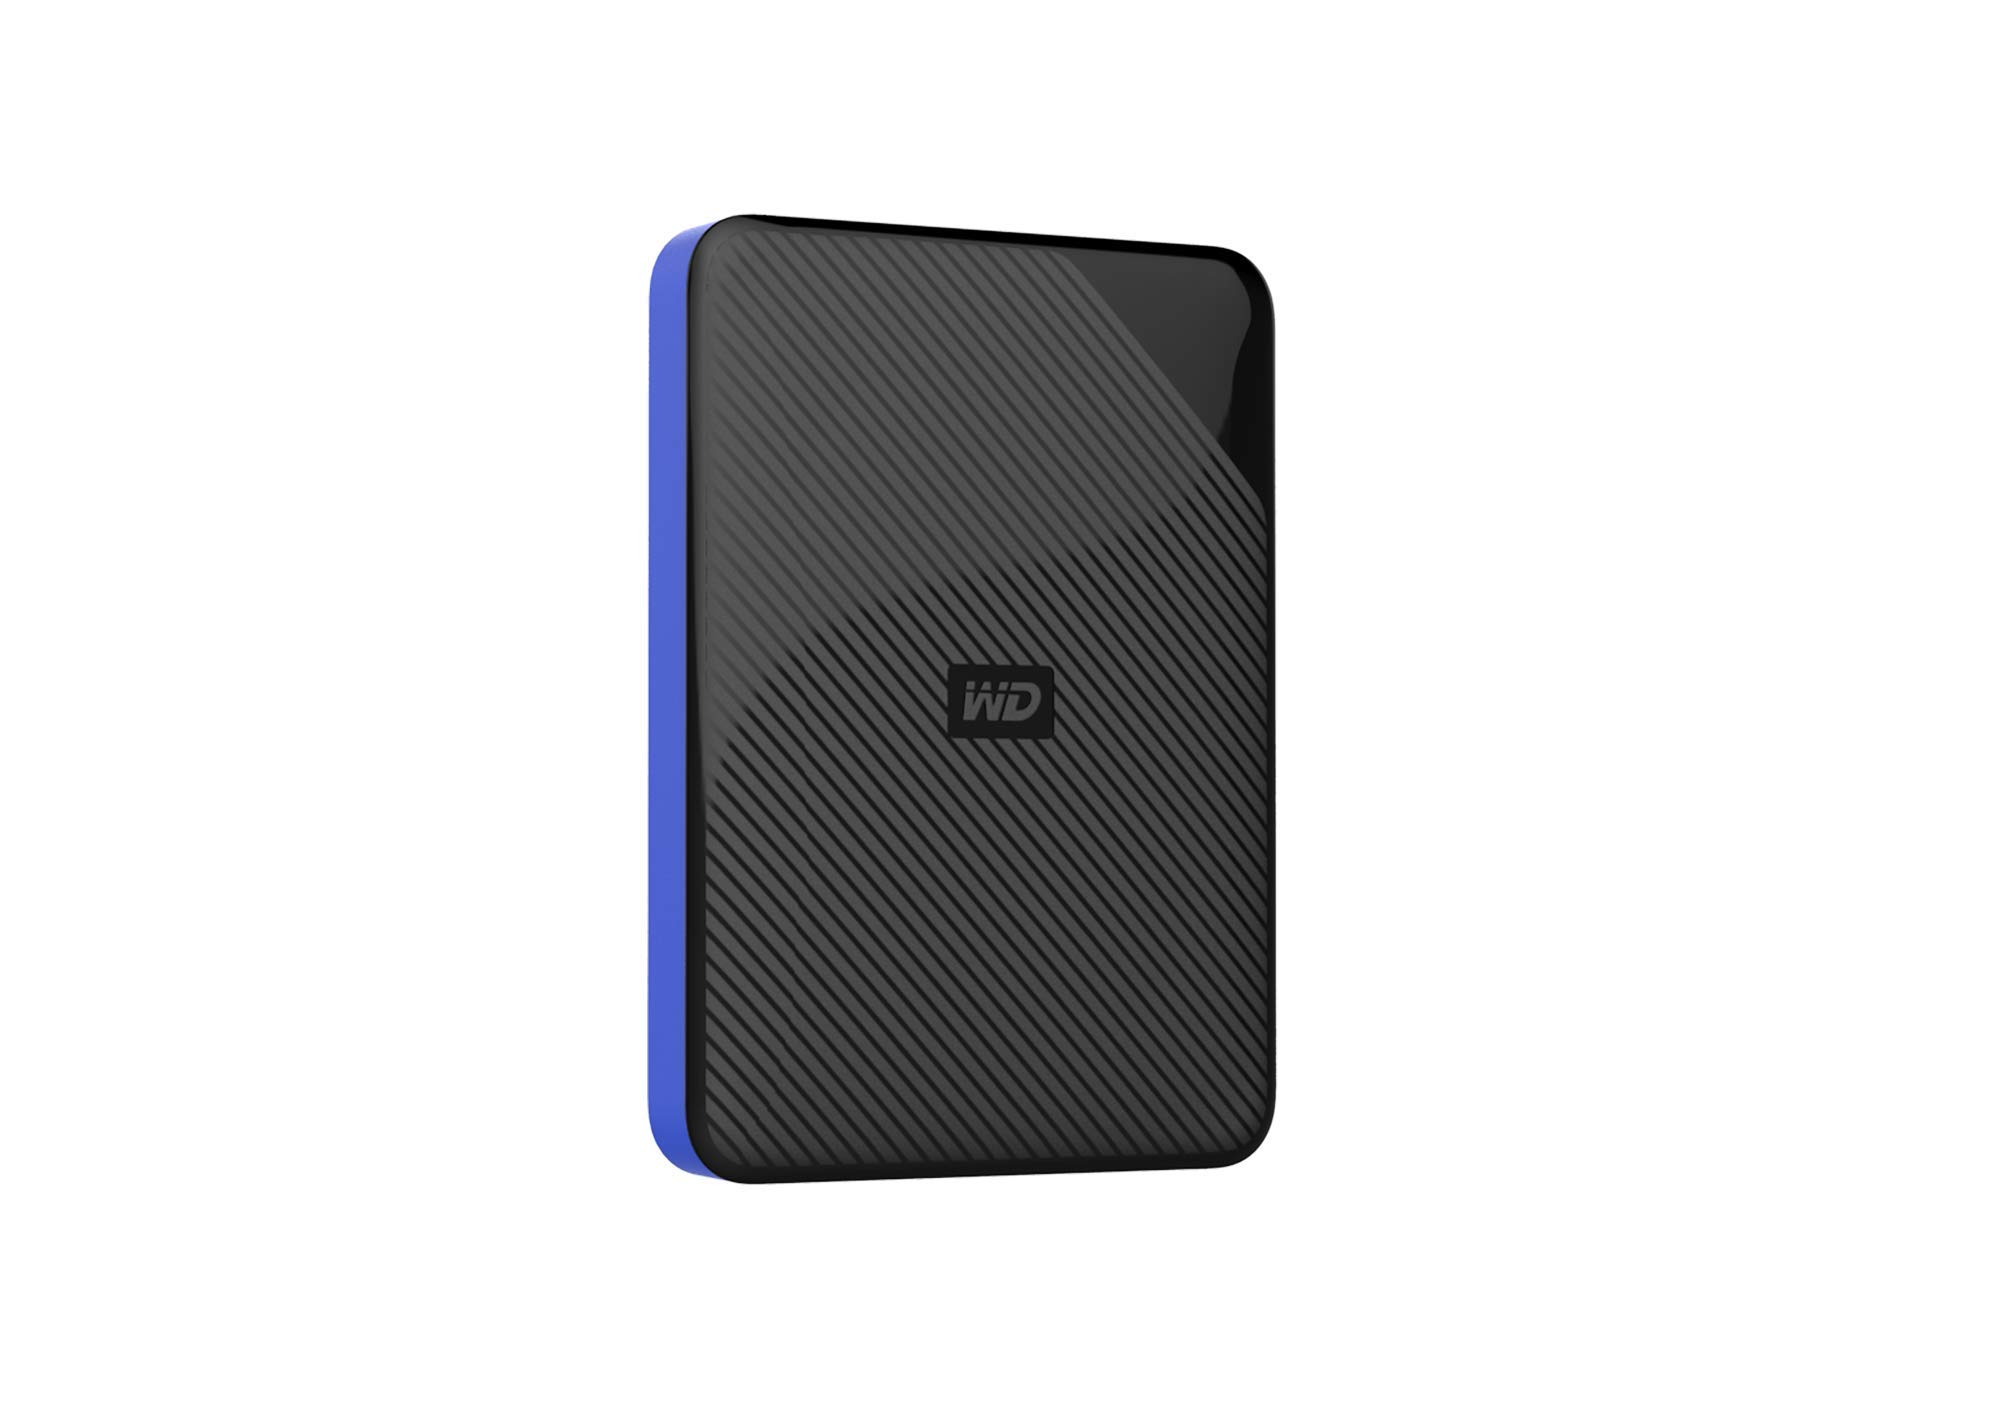 WD 2TB Gaming Drive Works with Playstation 4 Portable External Hard Drive - WDBDFF0020BBK-WESN by Western Digital